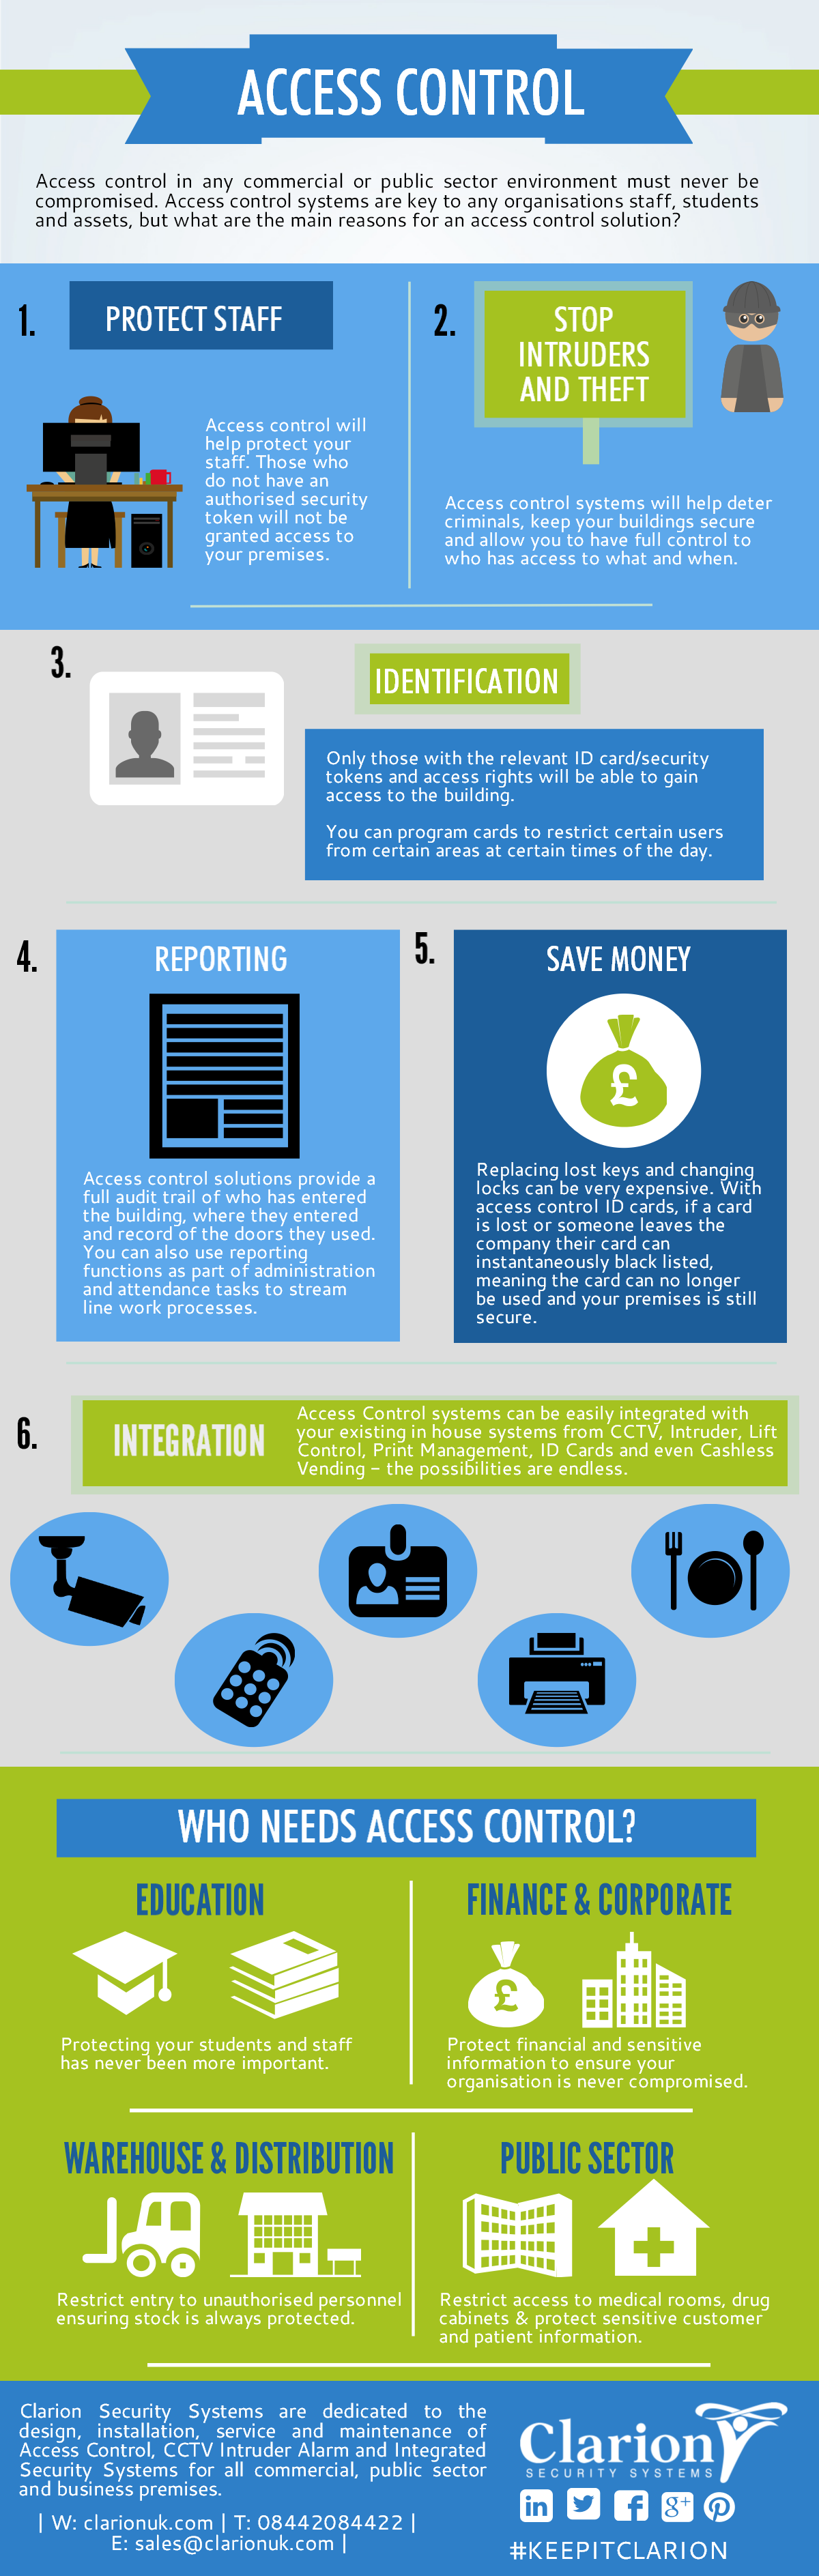 Access Control System Infographic Access Control